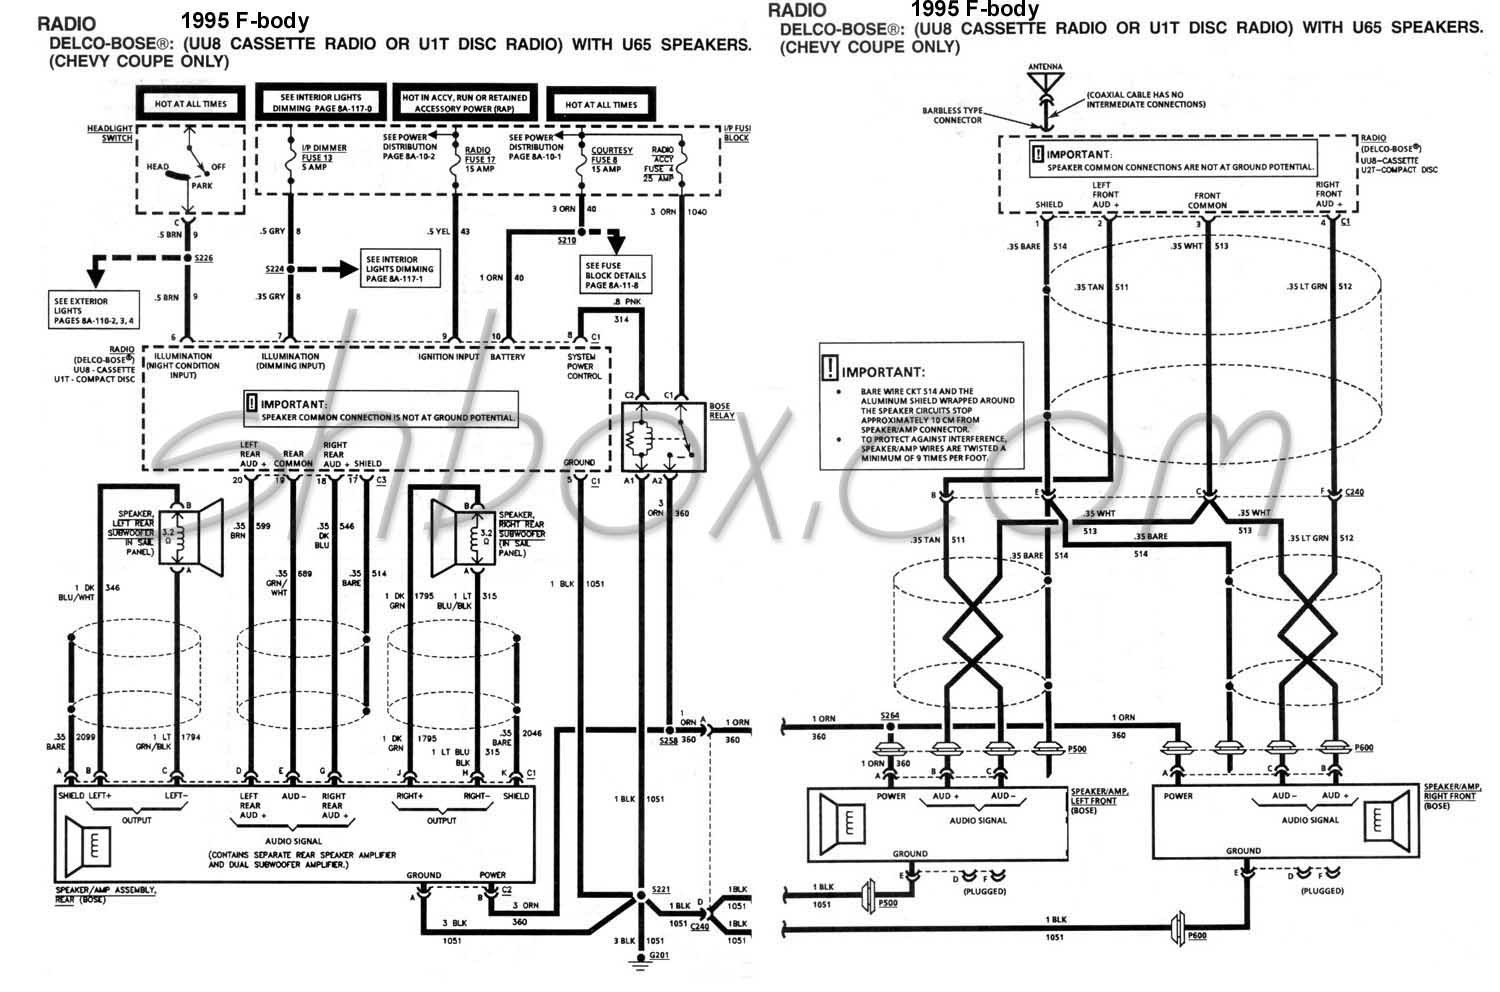 hight resolution of 1997 chevy camaro wiring diagram wiring diagram source 1996 s10 wiring diagram 4th gen lt1 f